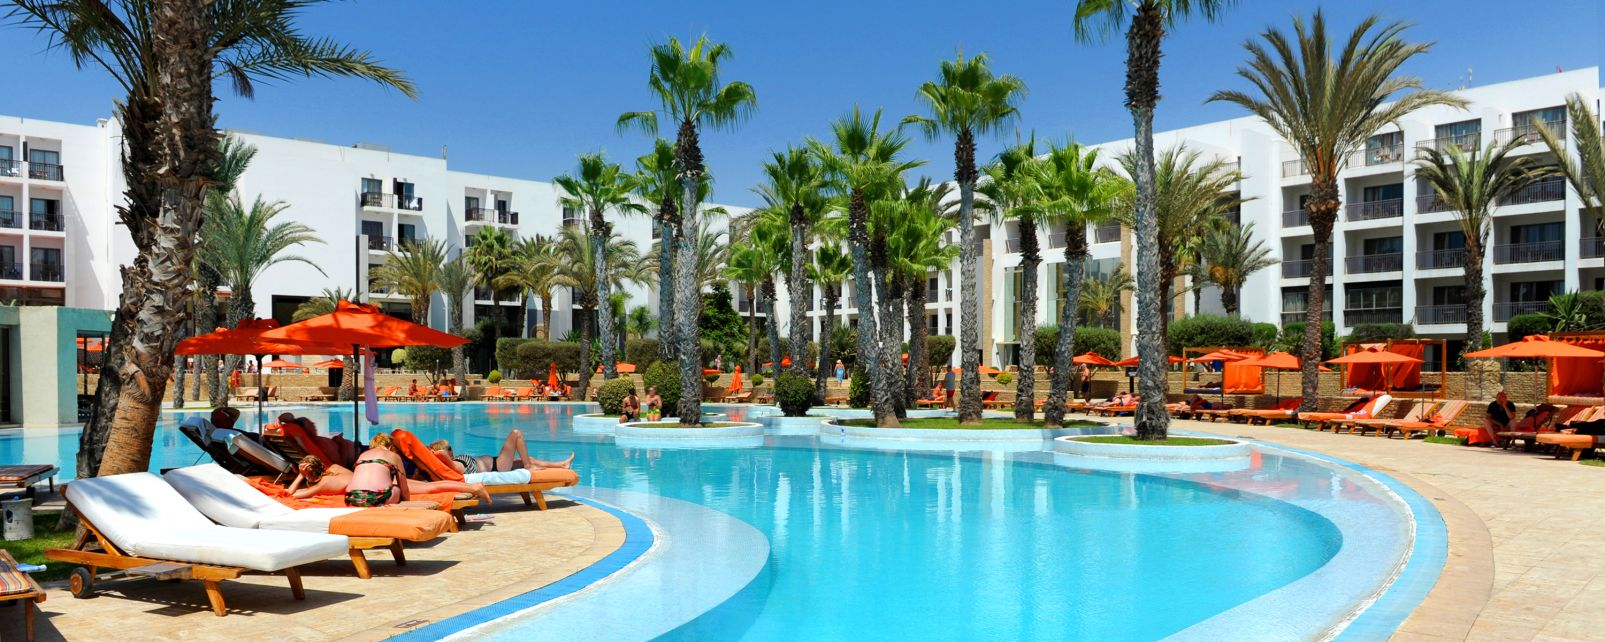 Kappa Club Royal Atlas Agadir 5*